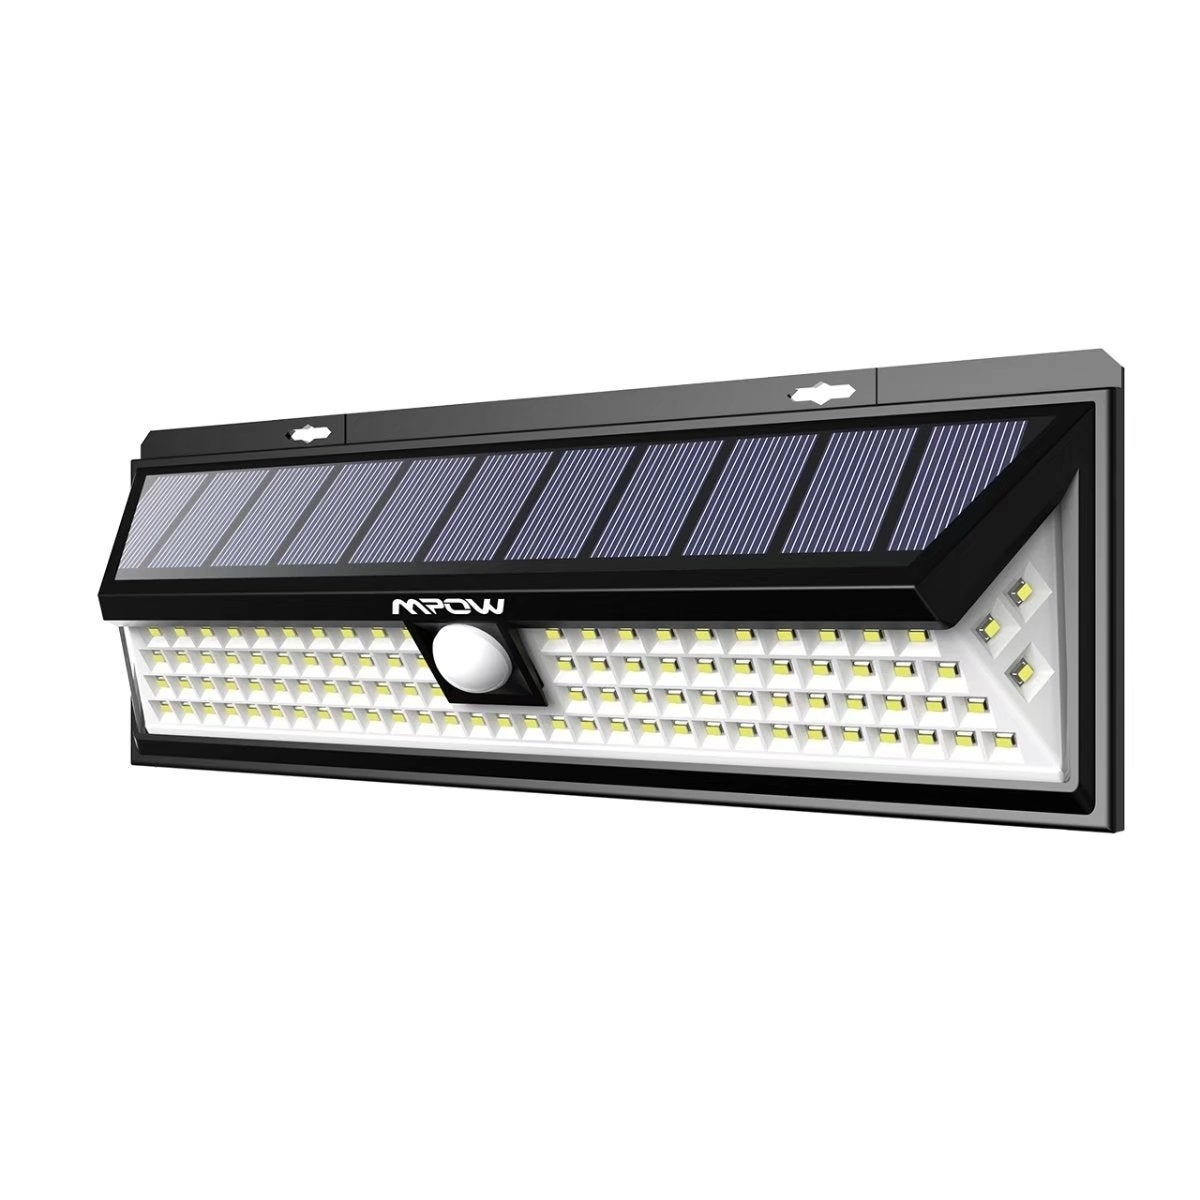 mpow 102 led motion sensor solar light large solar panel outdoor light for  garden driveway yard garage pathway and patio